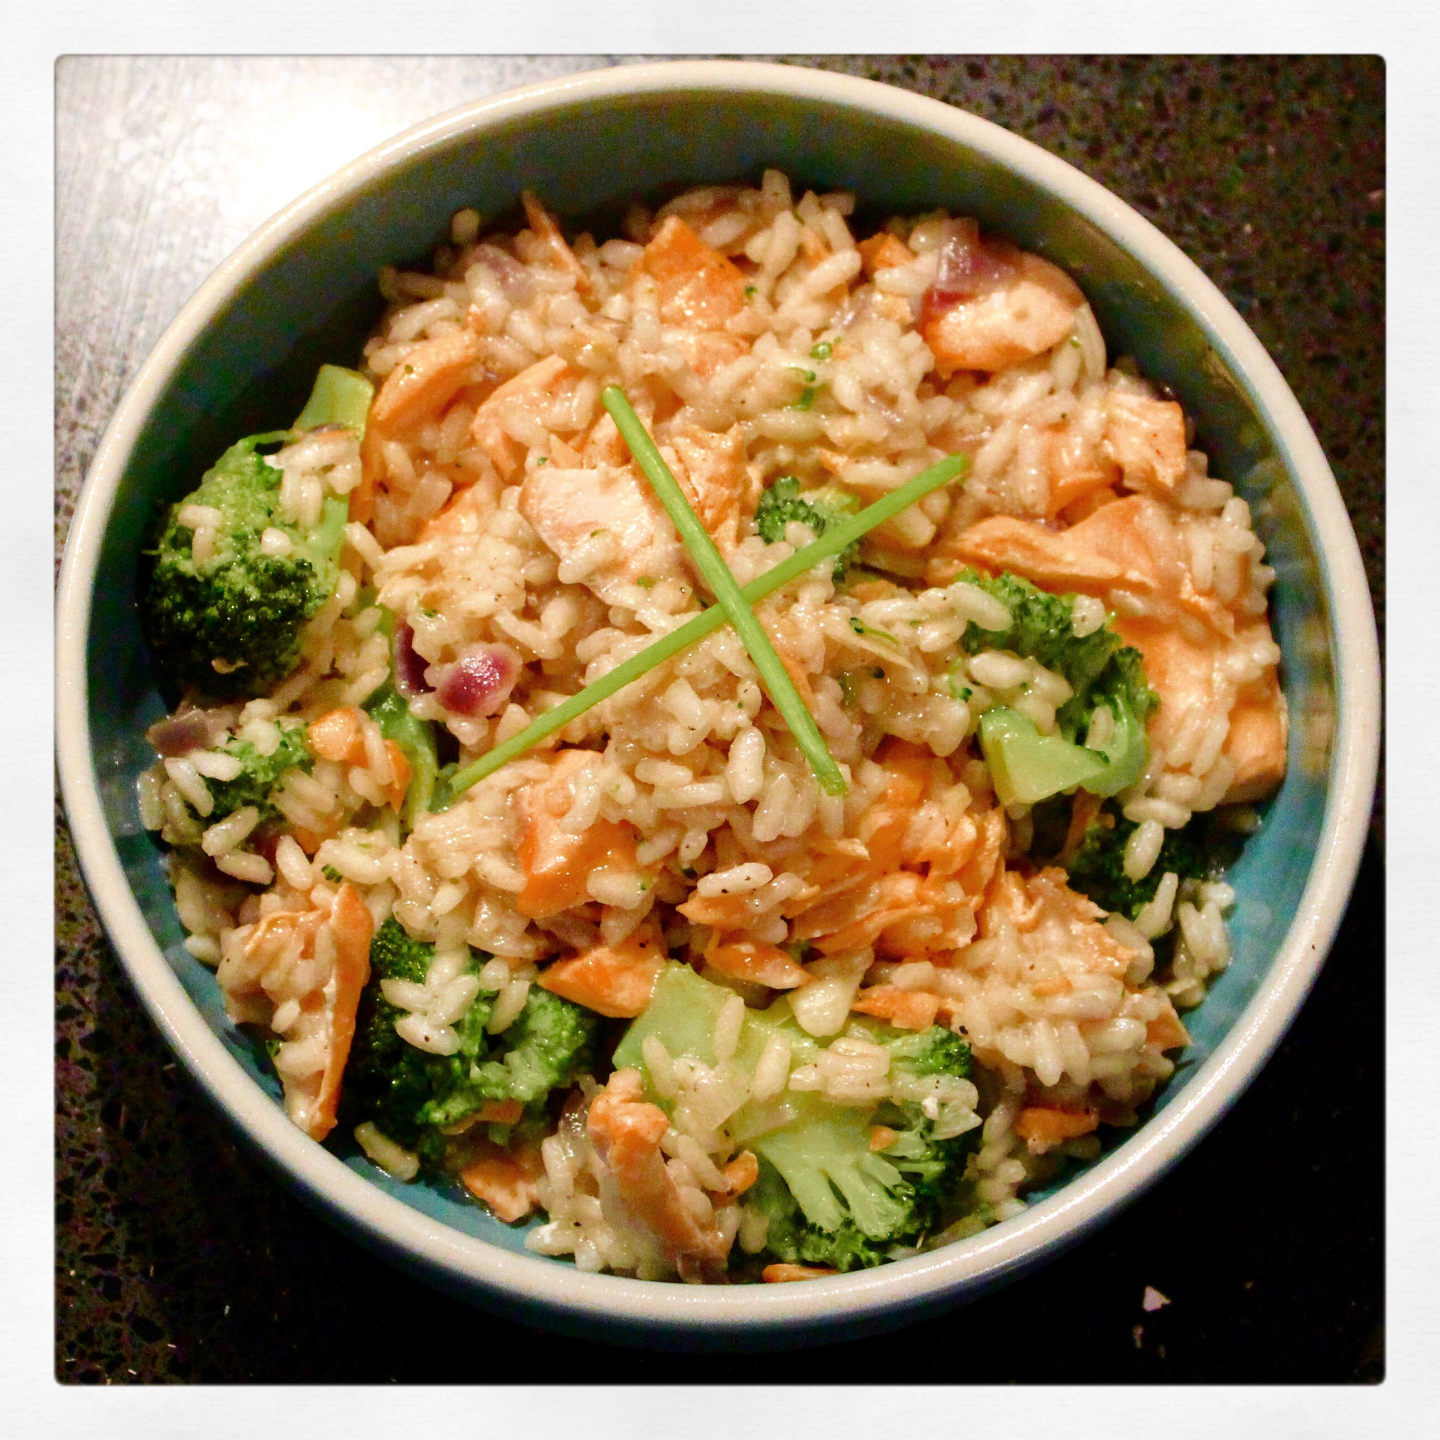 Salmon and Broccoli Risotto